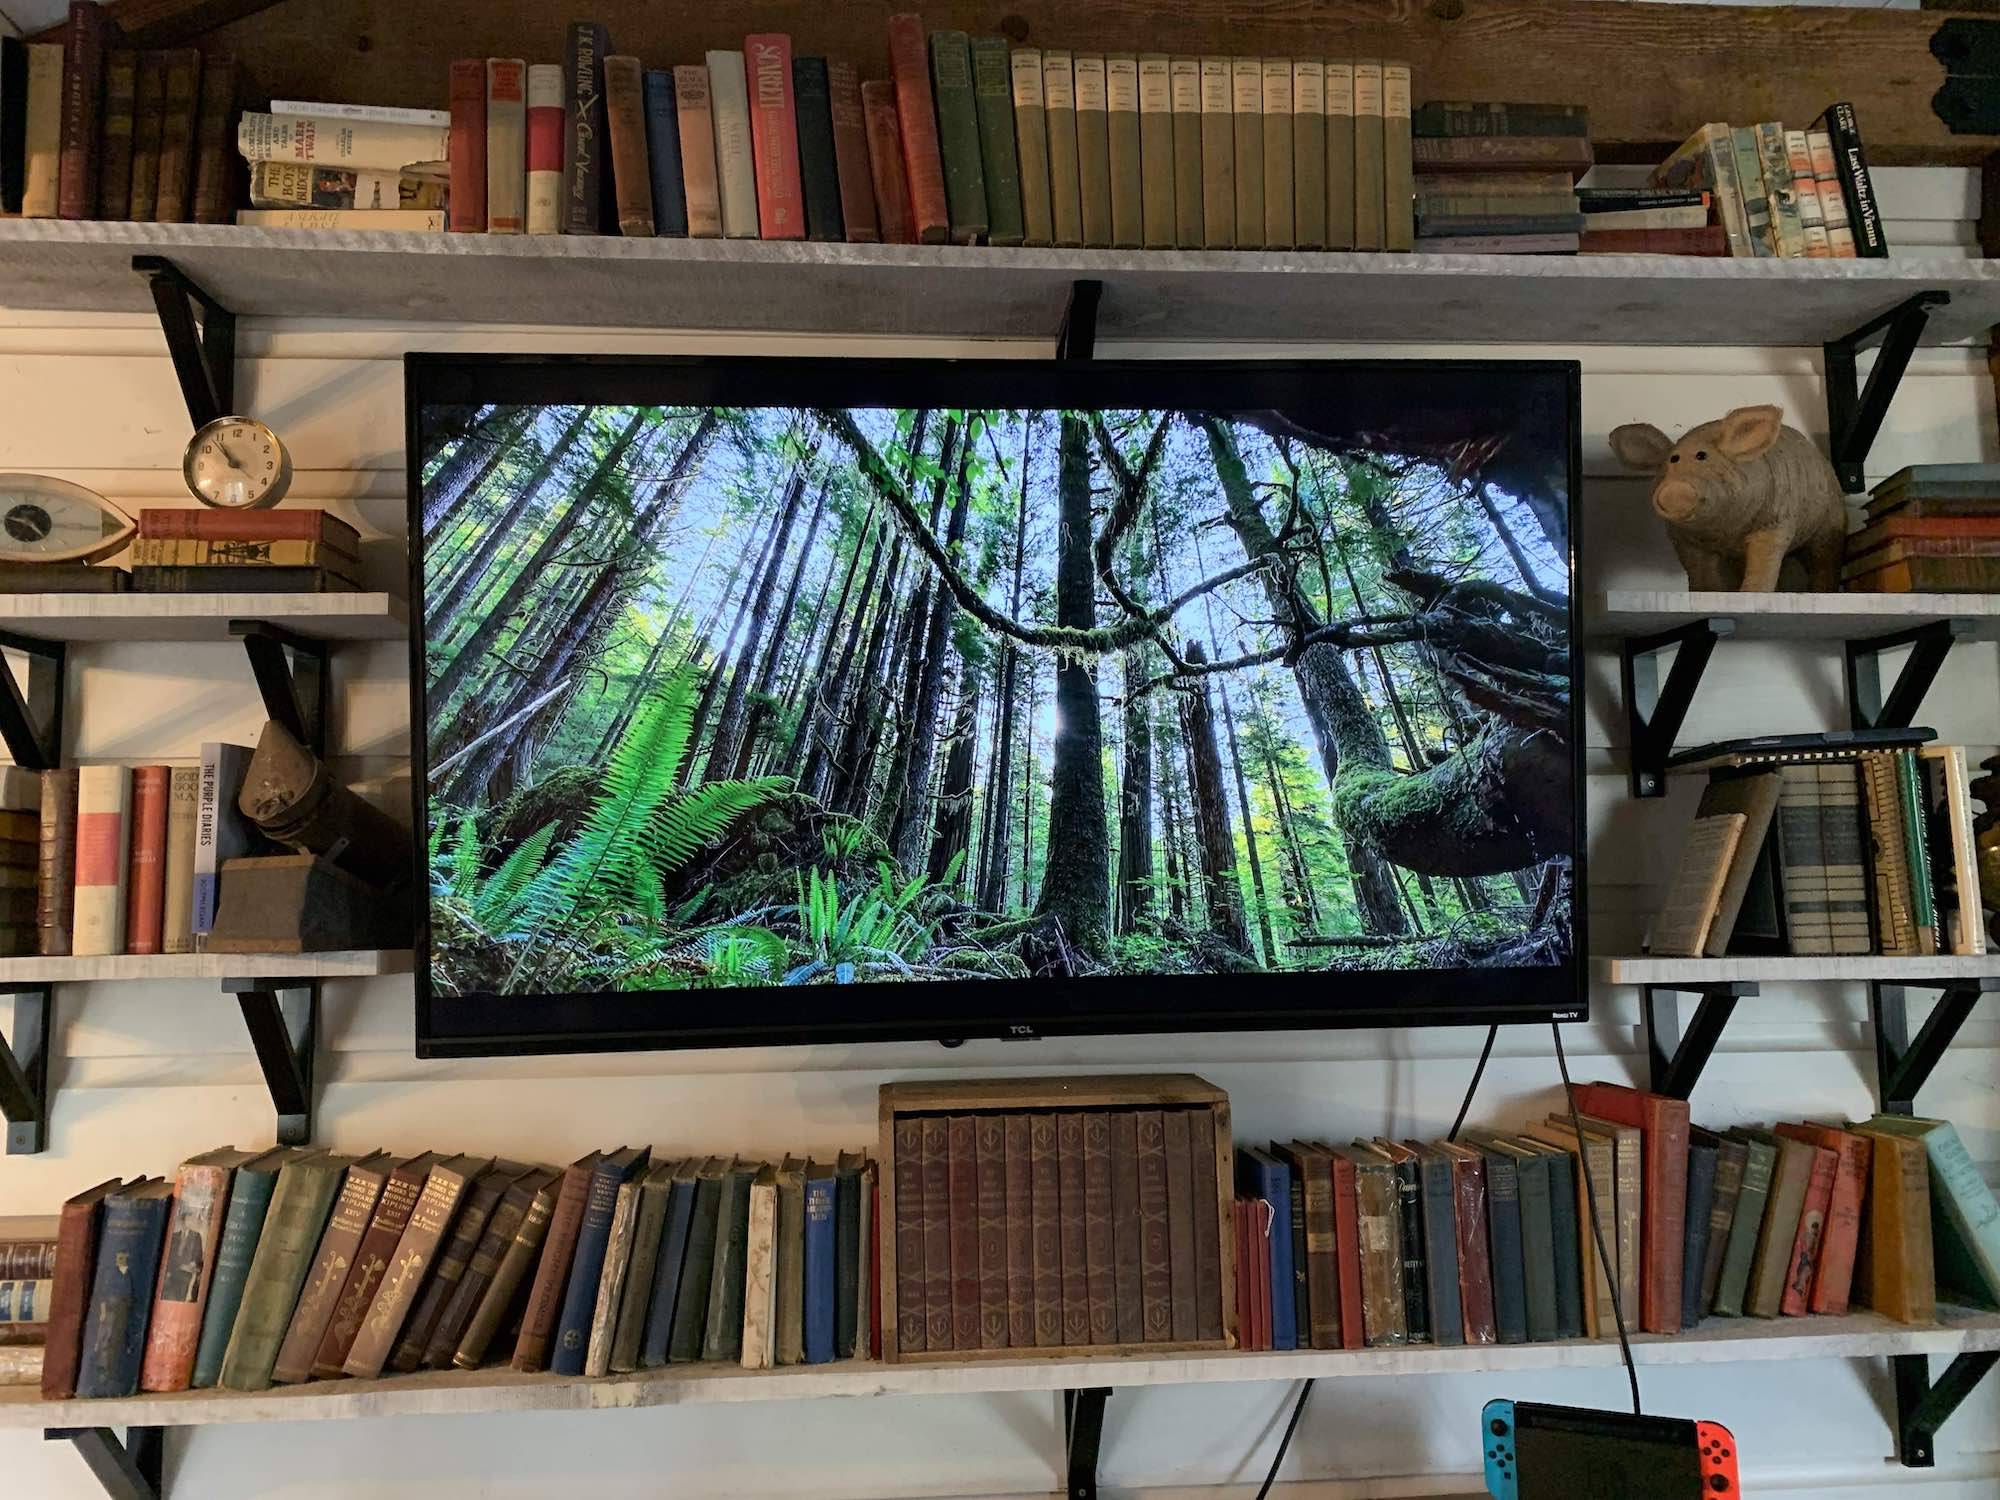 TCL 4 Series Review